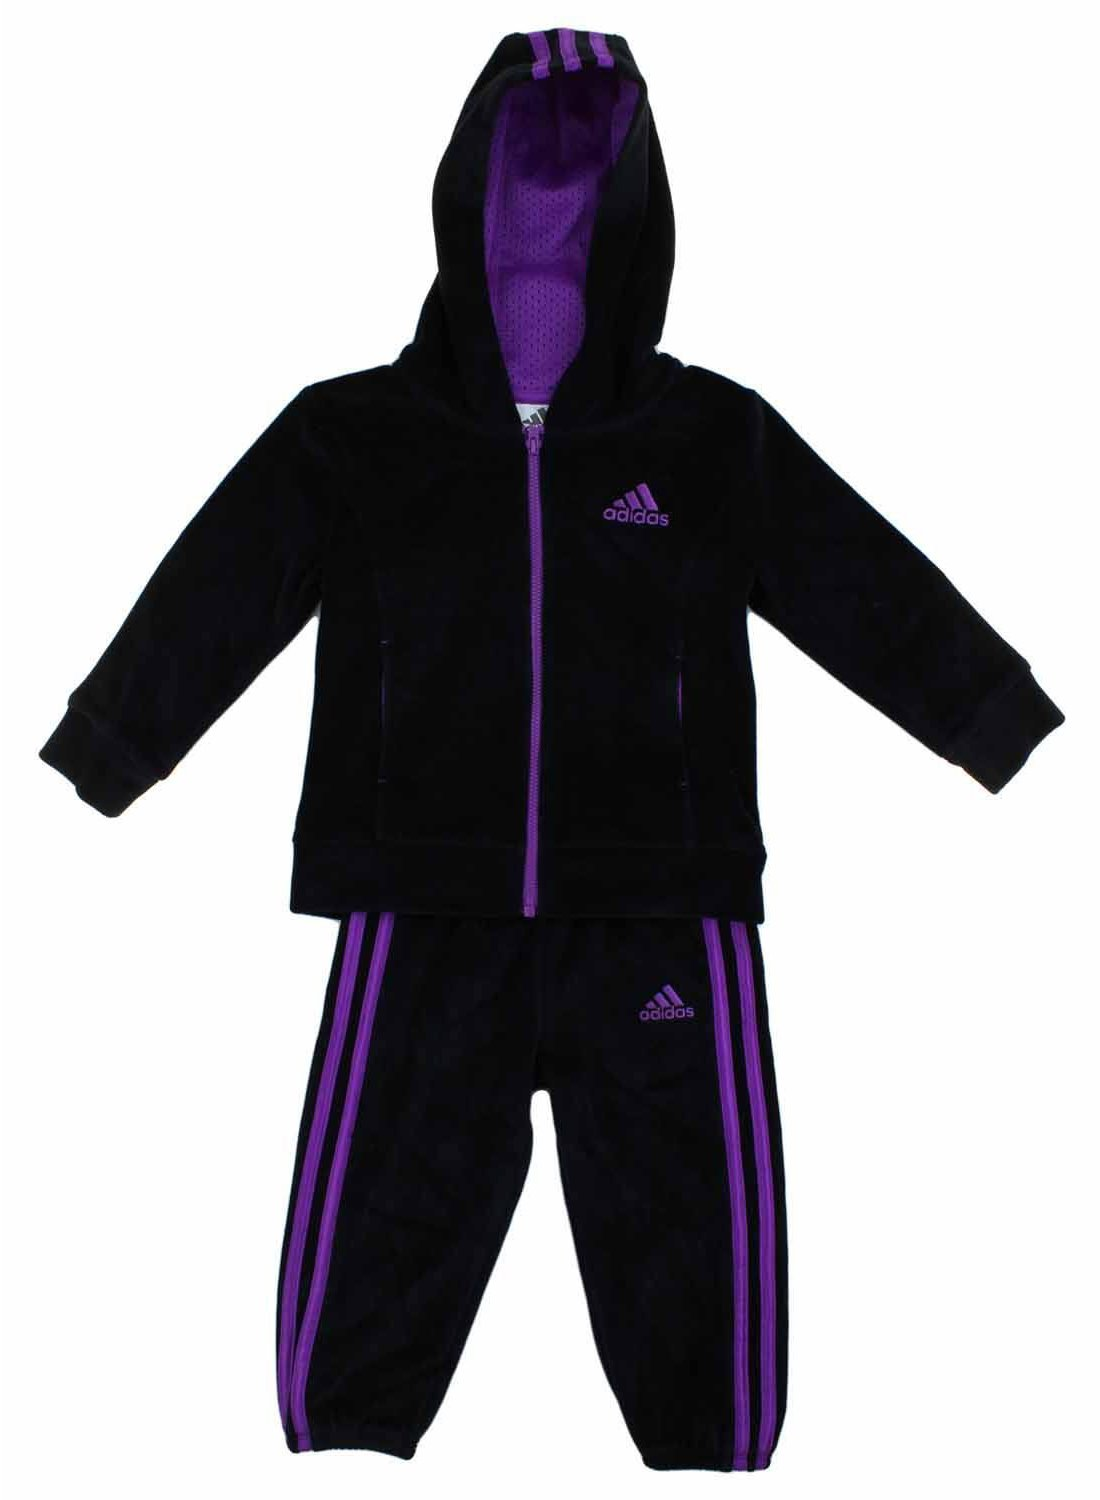 adidas Girls' 2 Piece Jacket Pants Tracksuit Set